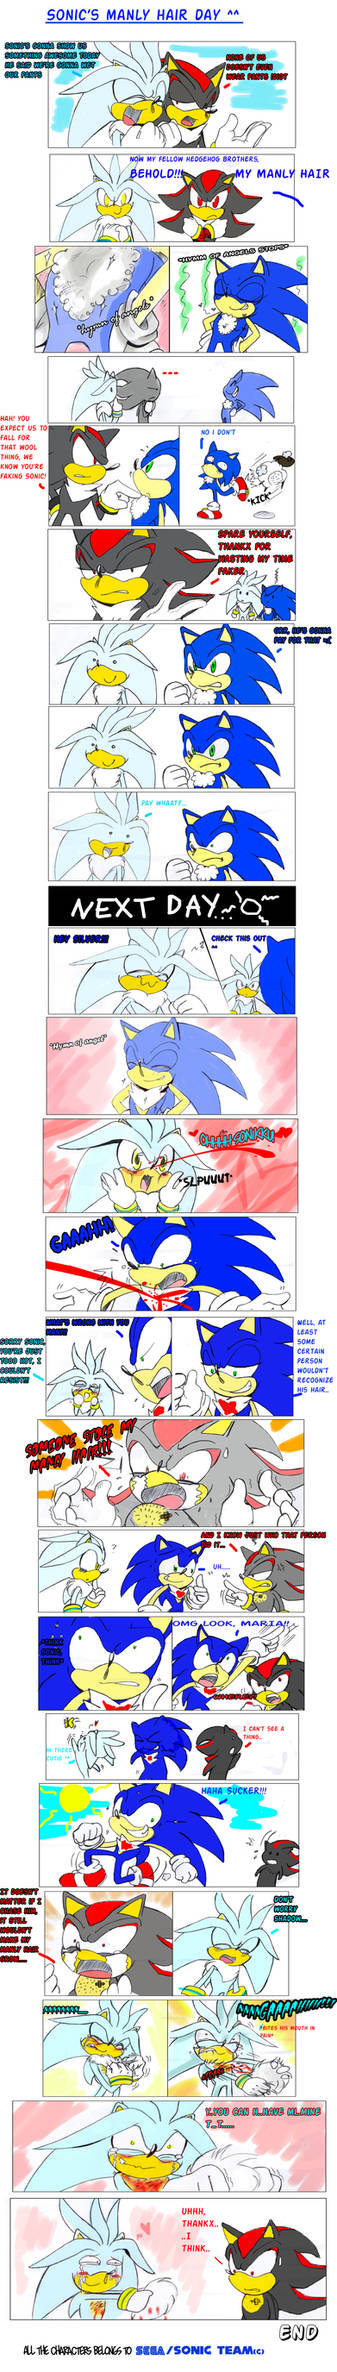 Sonic's manly hair day